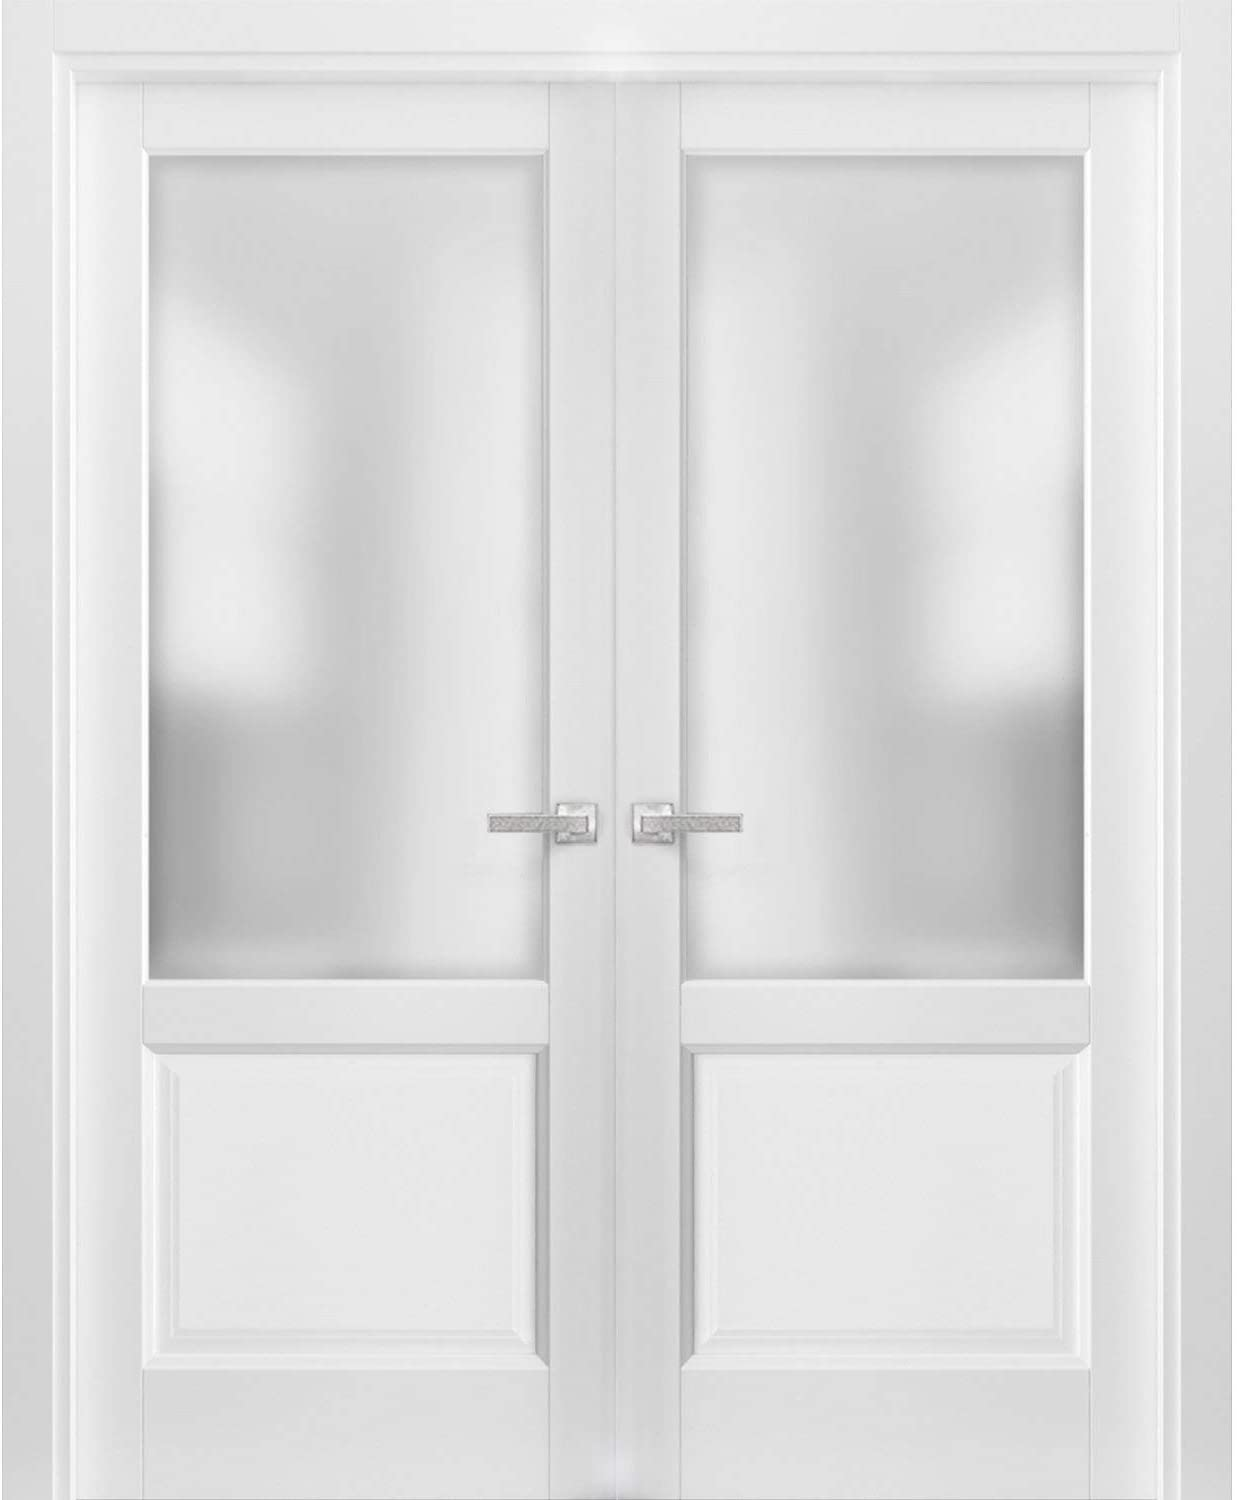 French Cheap SALE Start Double Panel Lite Doors 48 Hardware x 80 with 22 Lucia Quality inspection